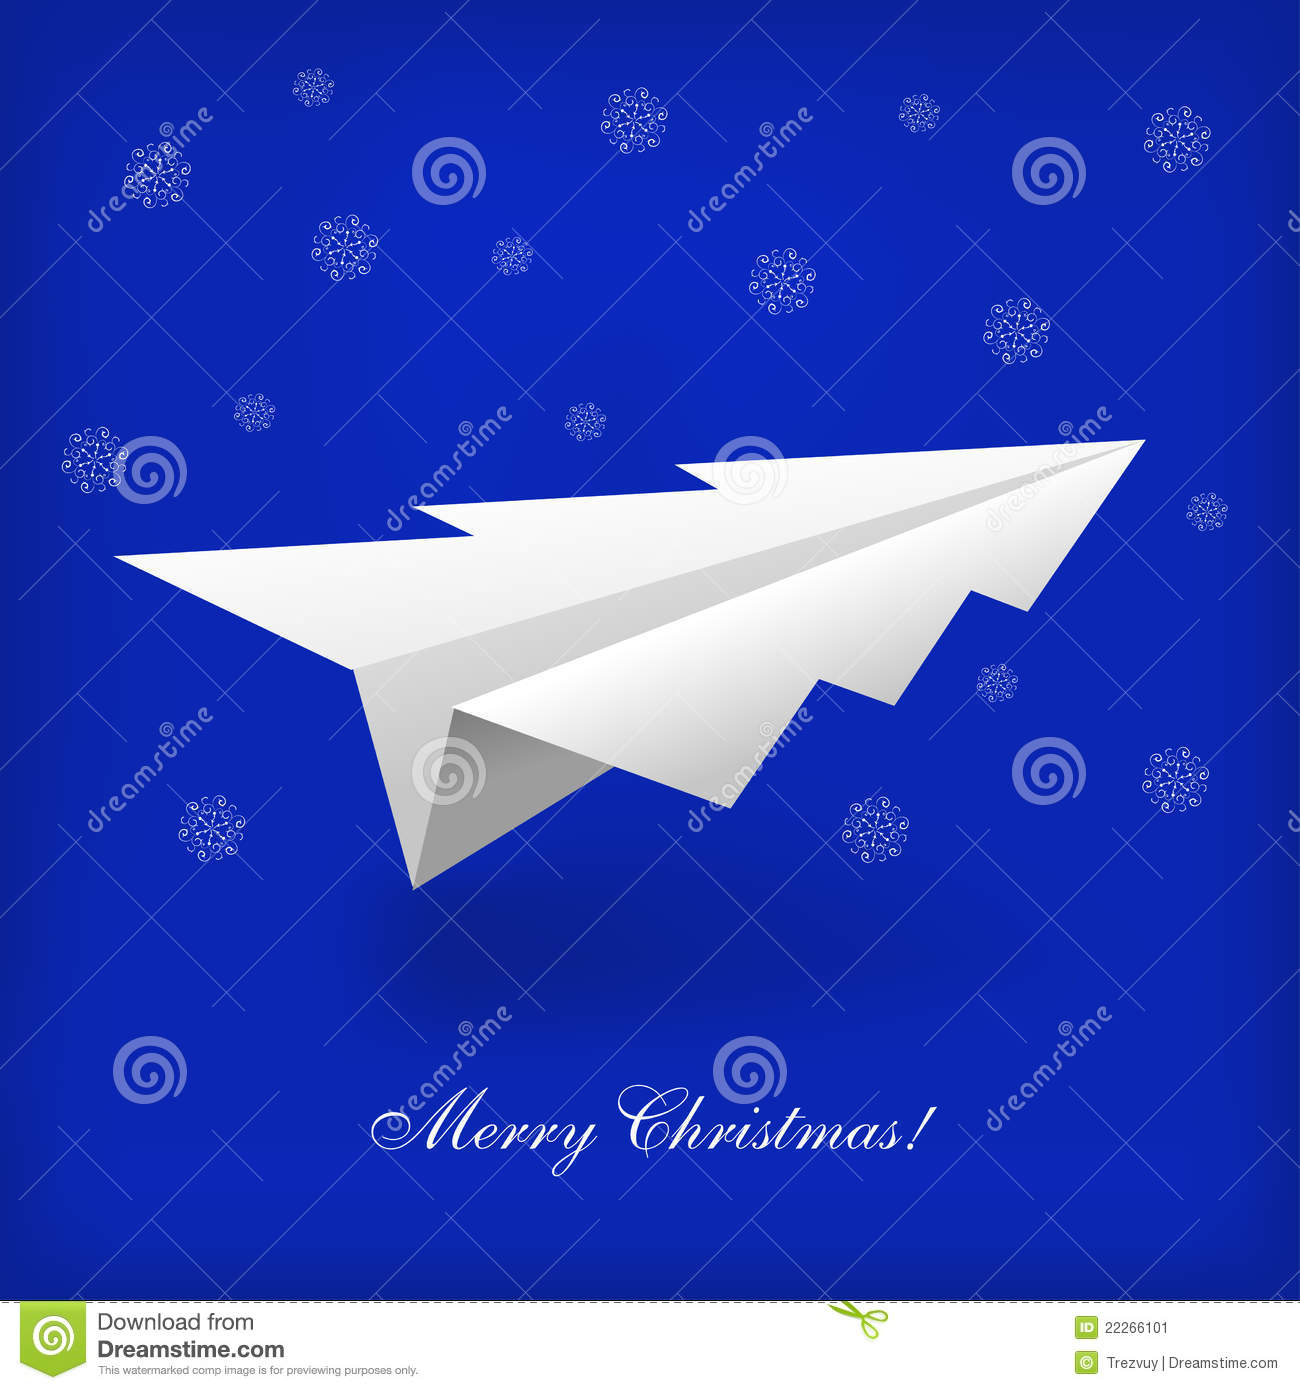 Concept Of The Christmas Tree And Origami Airplane Stock